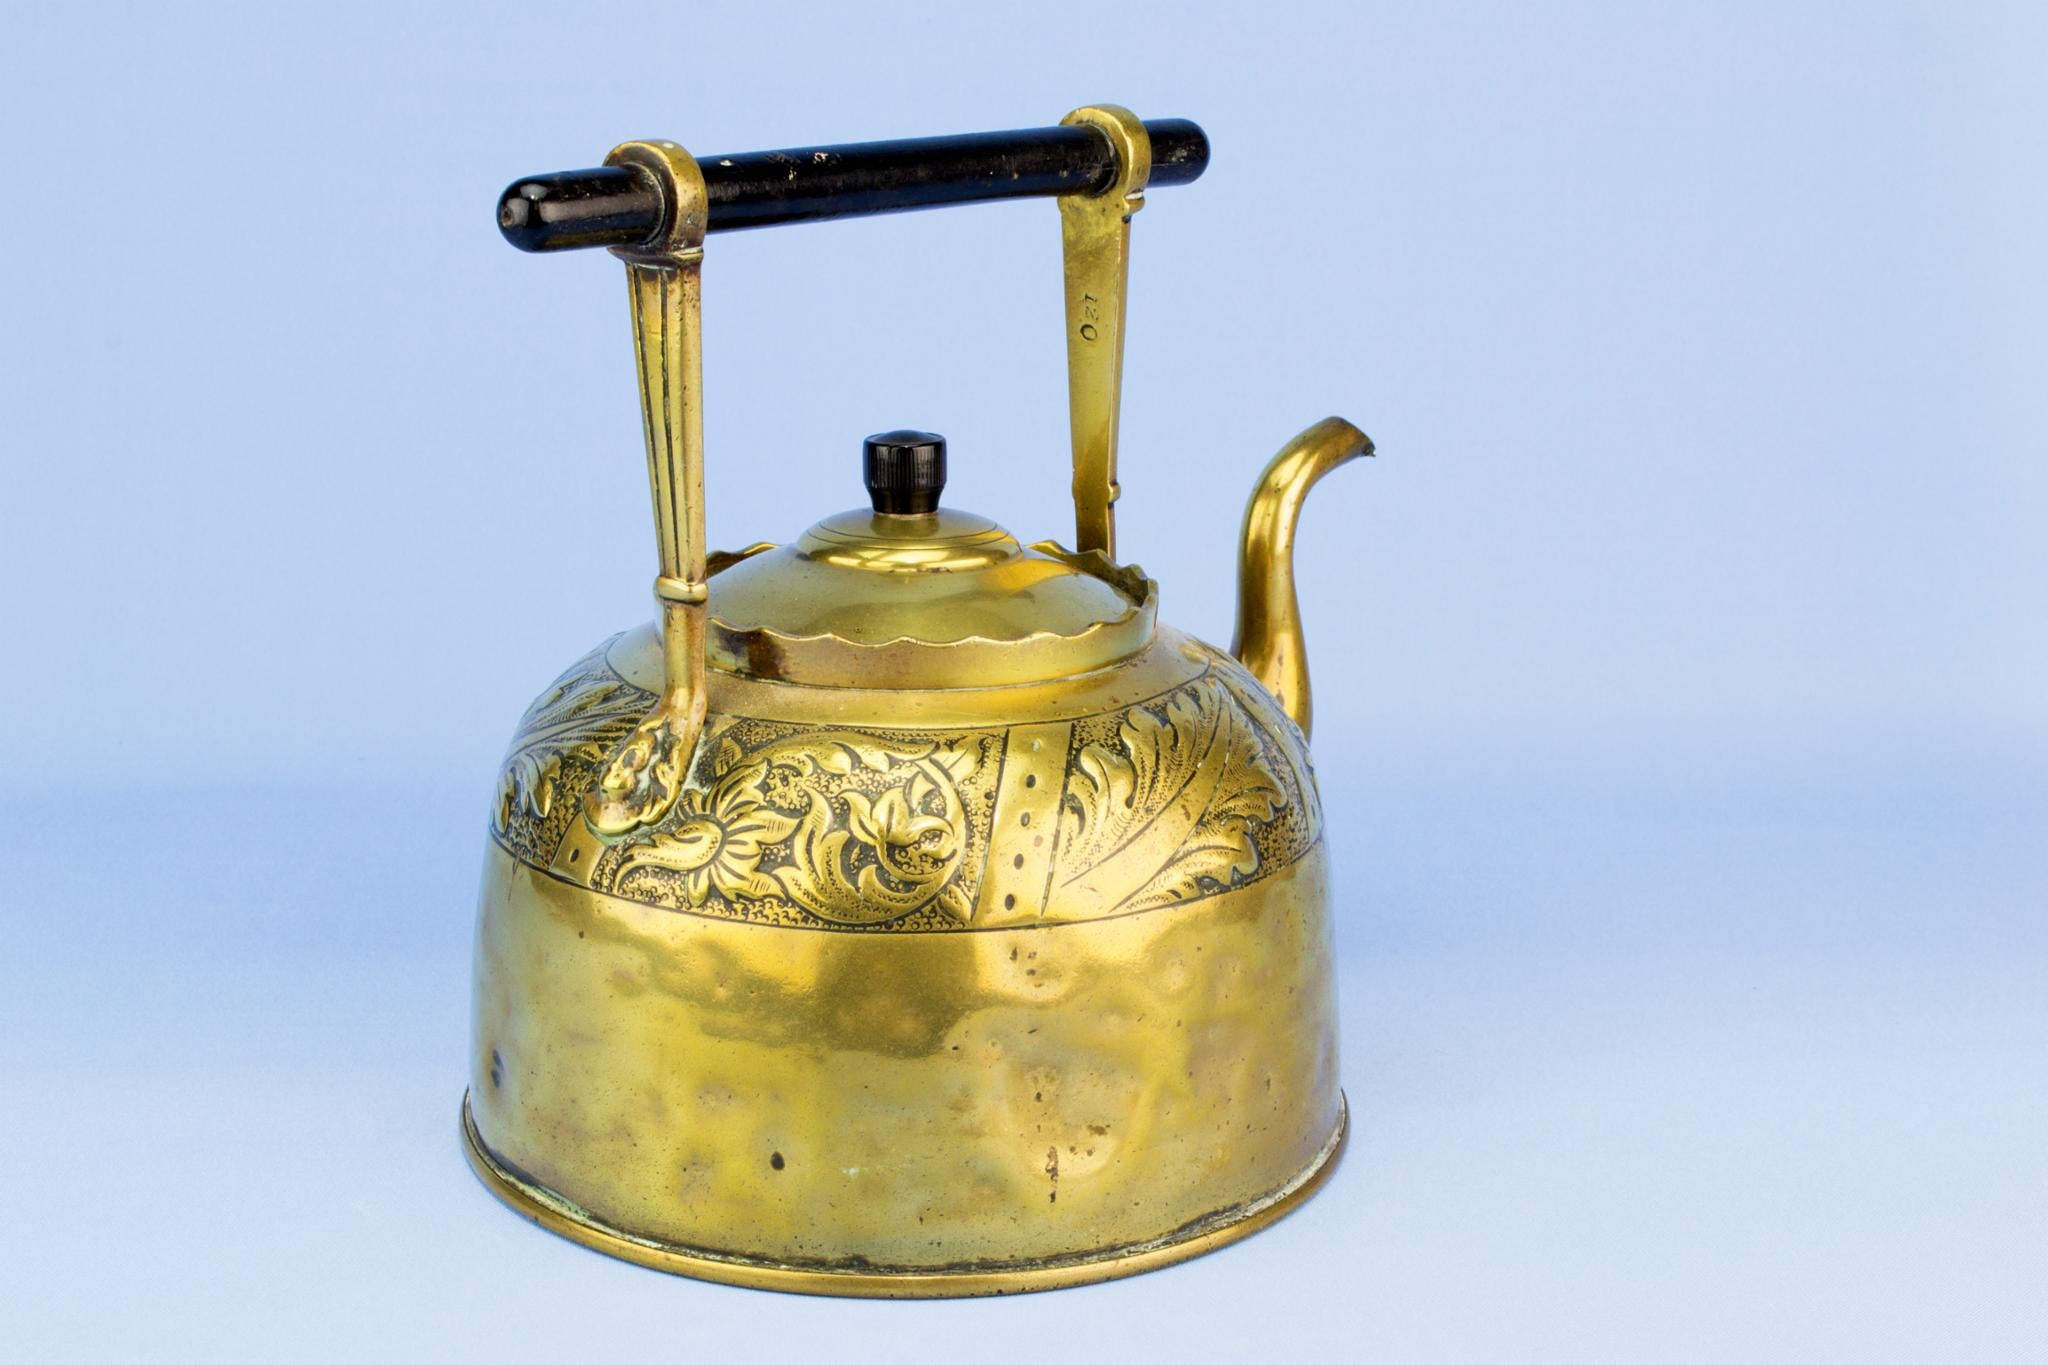 Army & Navy Arts and Crafts Brass Kettle, English 1890s